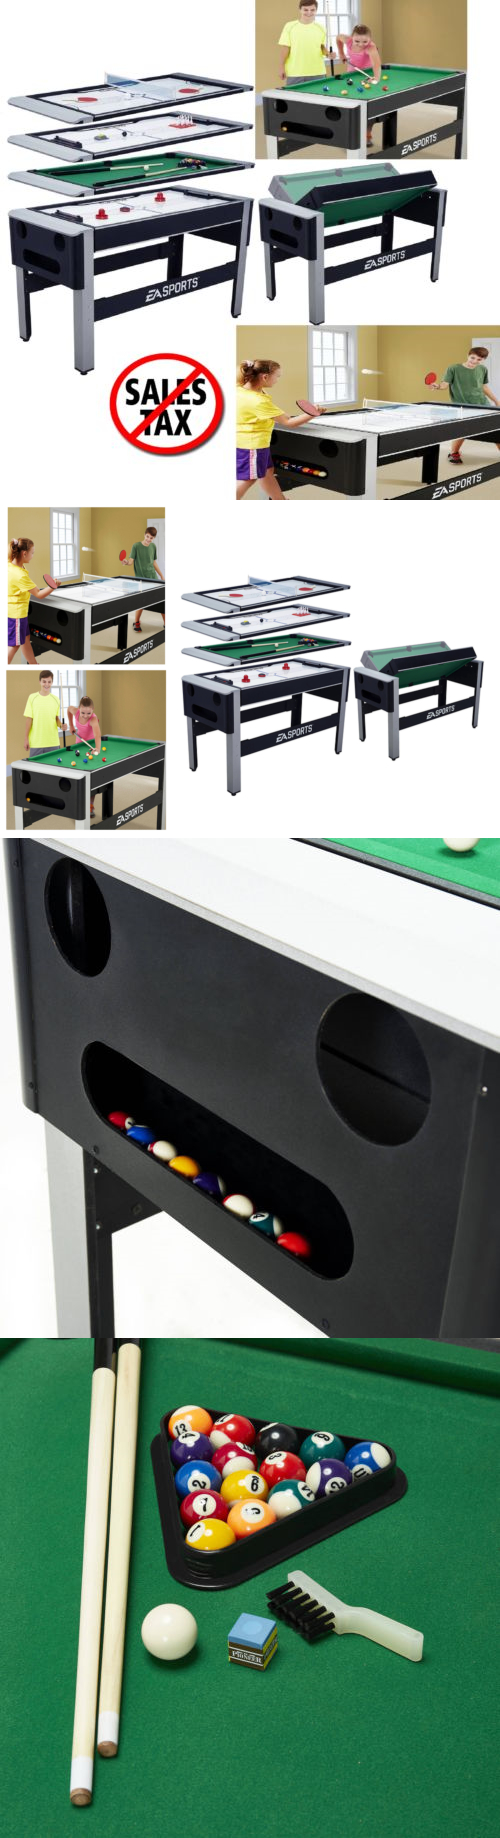 Other Indoor Games 36278: 4 In 1 Swivel Combo Multi Game Billiards Pool  Bowling Hockey